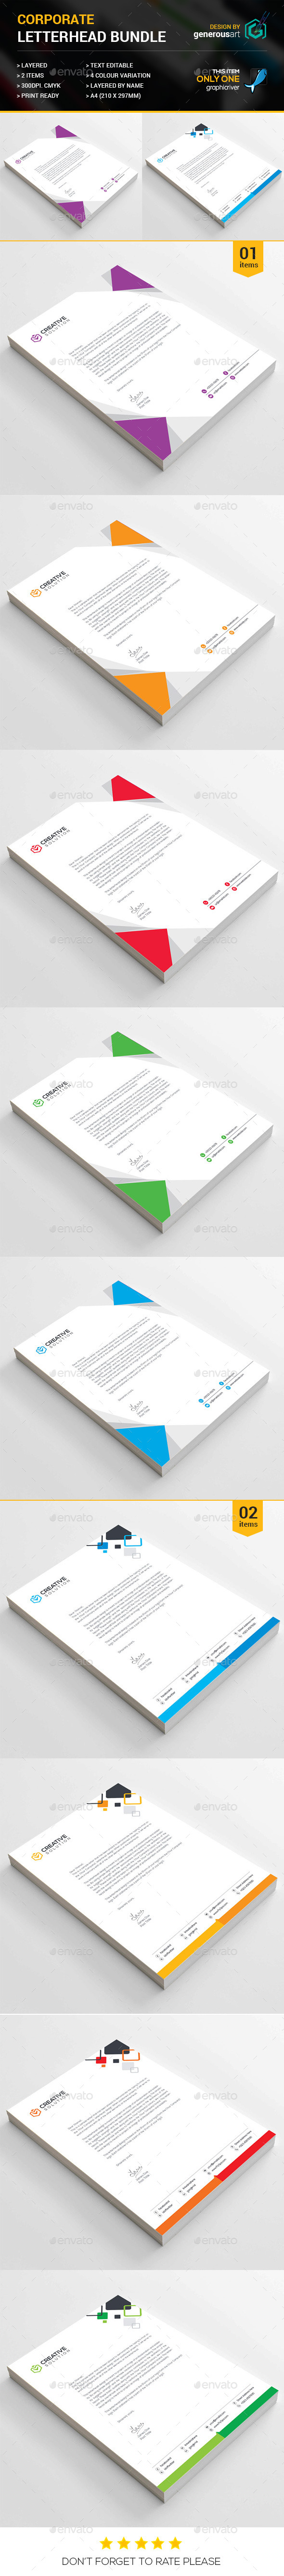 Business Letterhead Bundle 2 in 1 - Stationery Print Templates